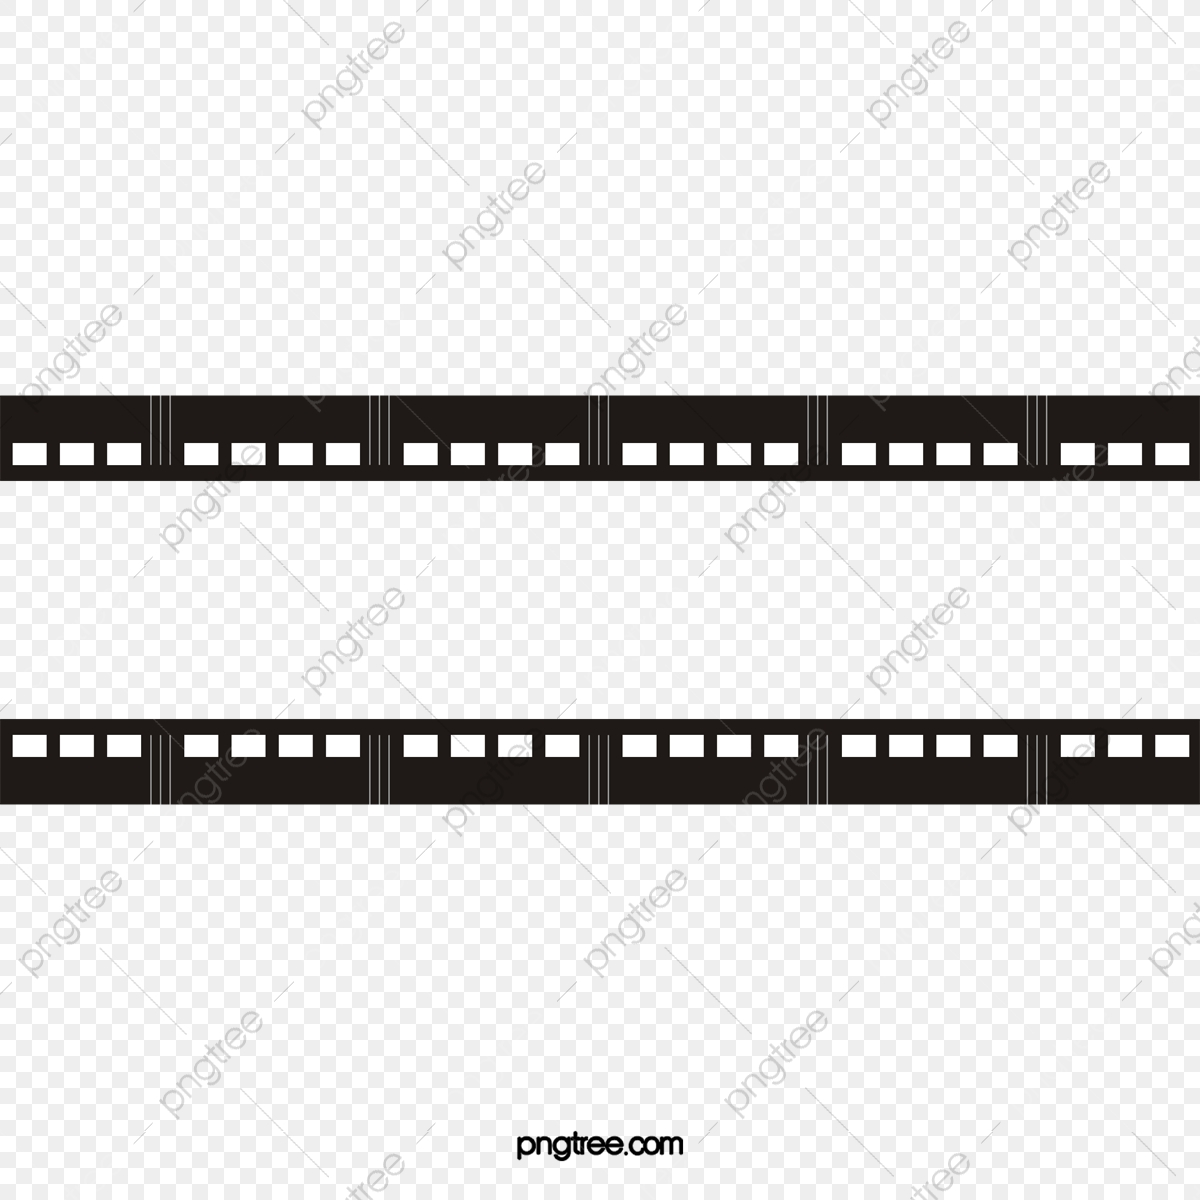 Movie tape. Background clipart the film